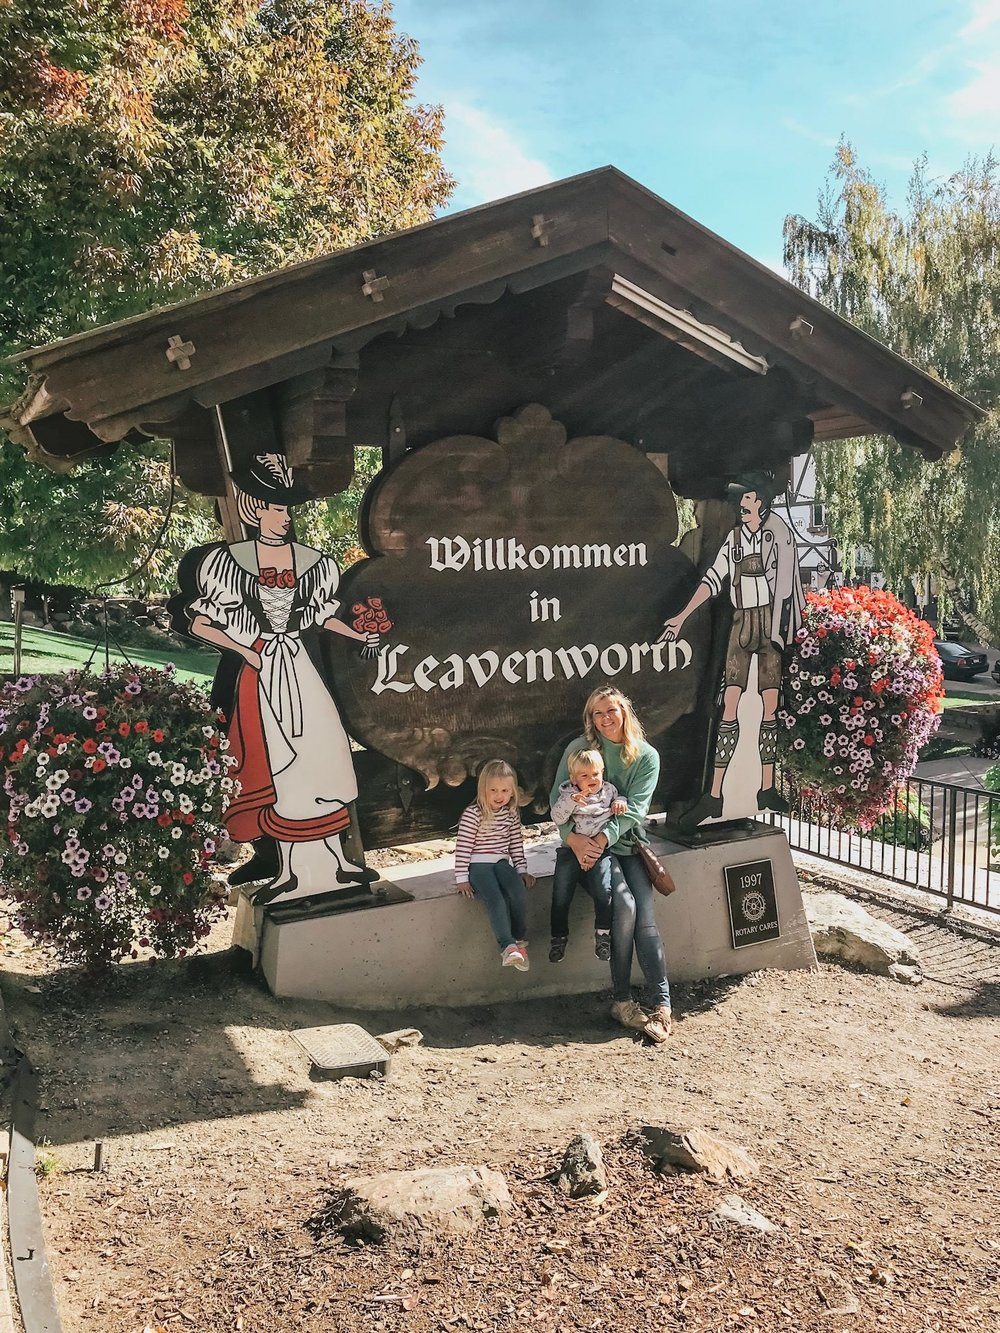 Can't Leave Leavenworth without taking this photo!